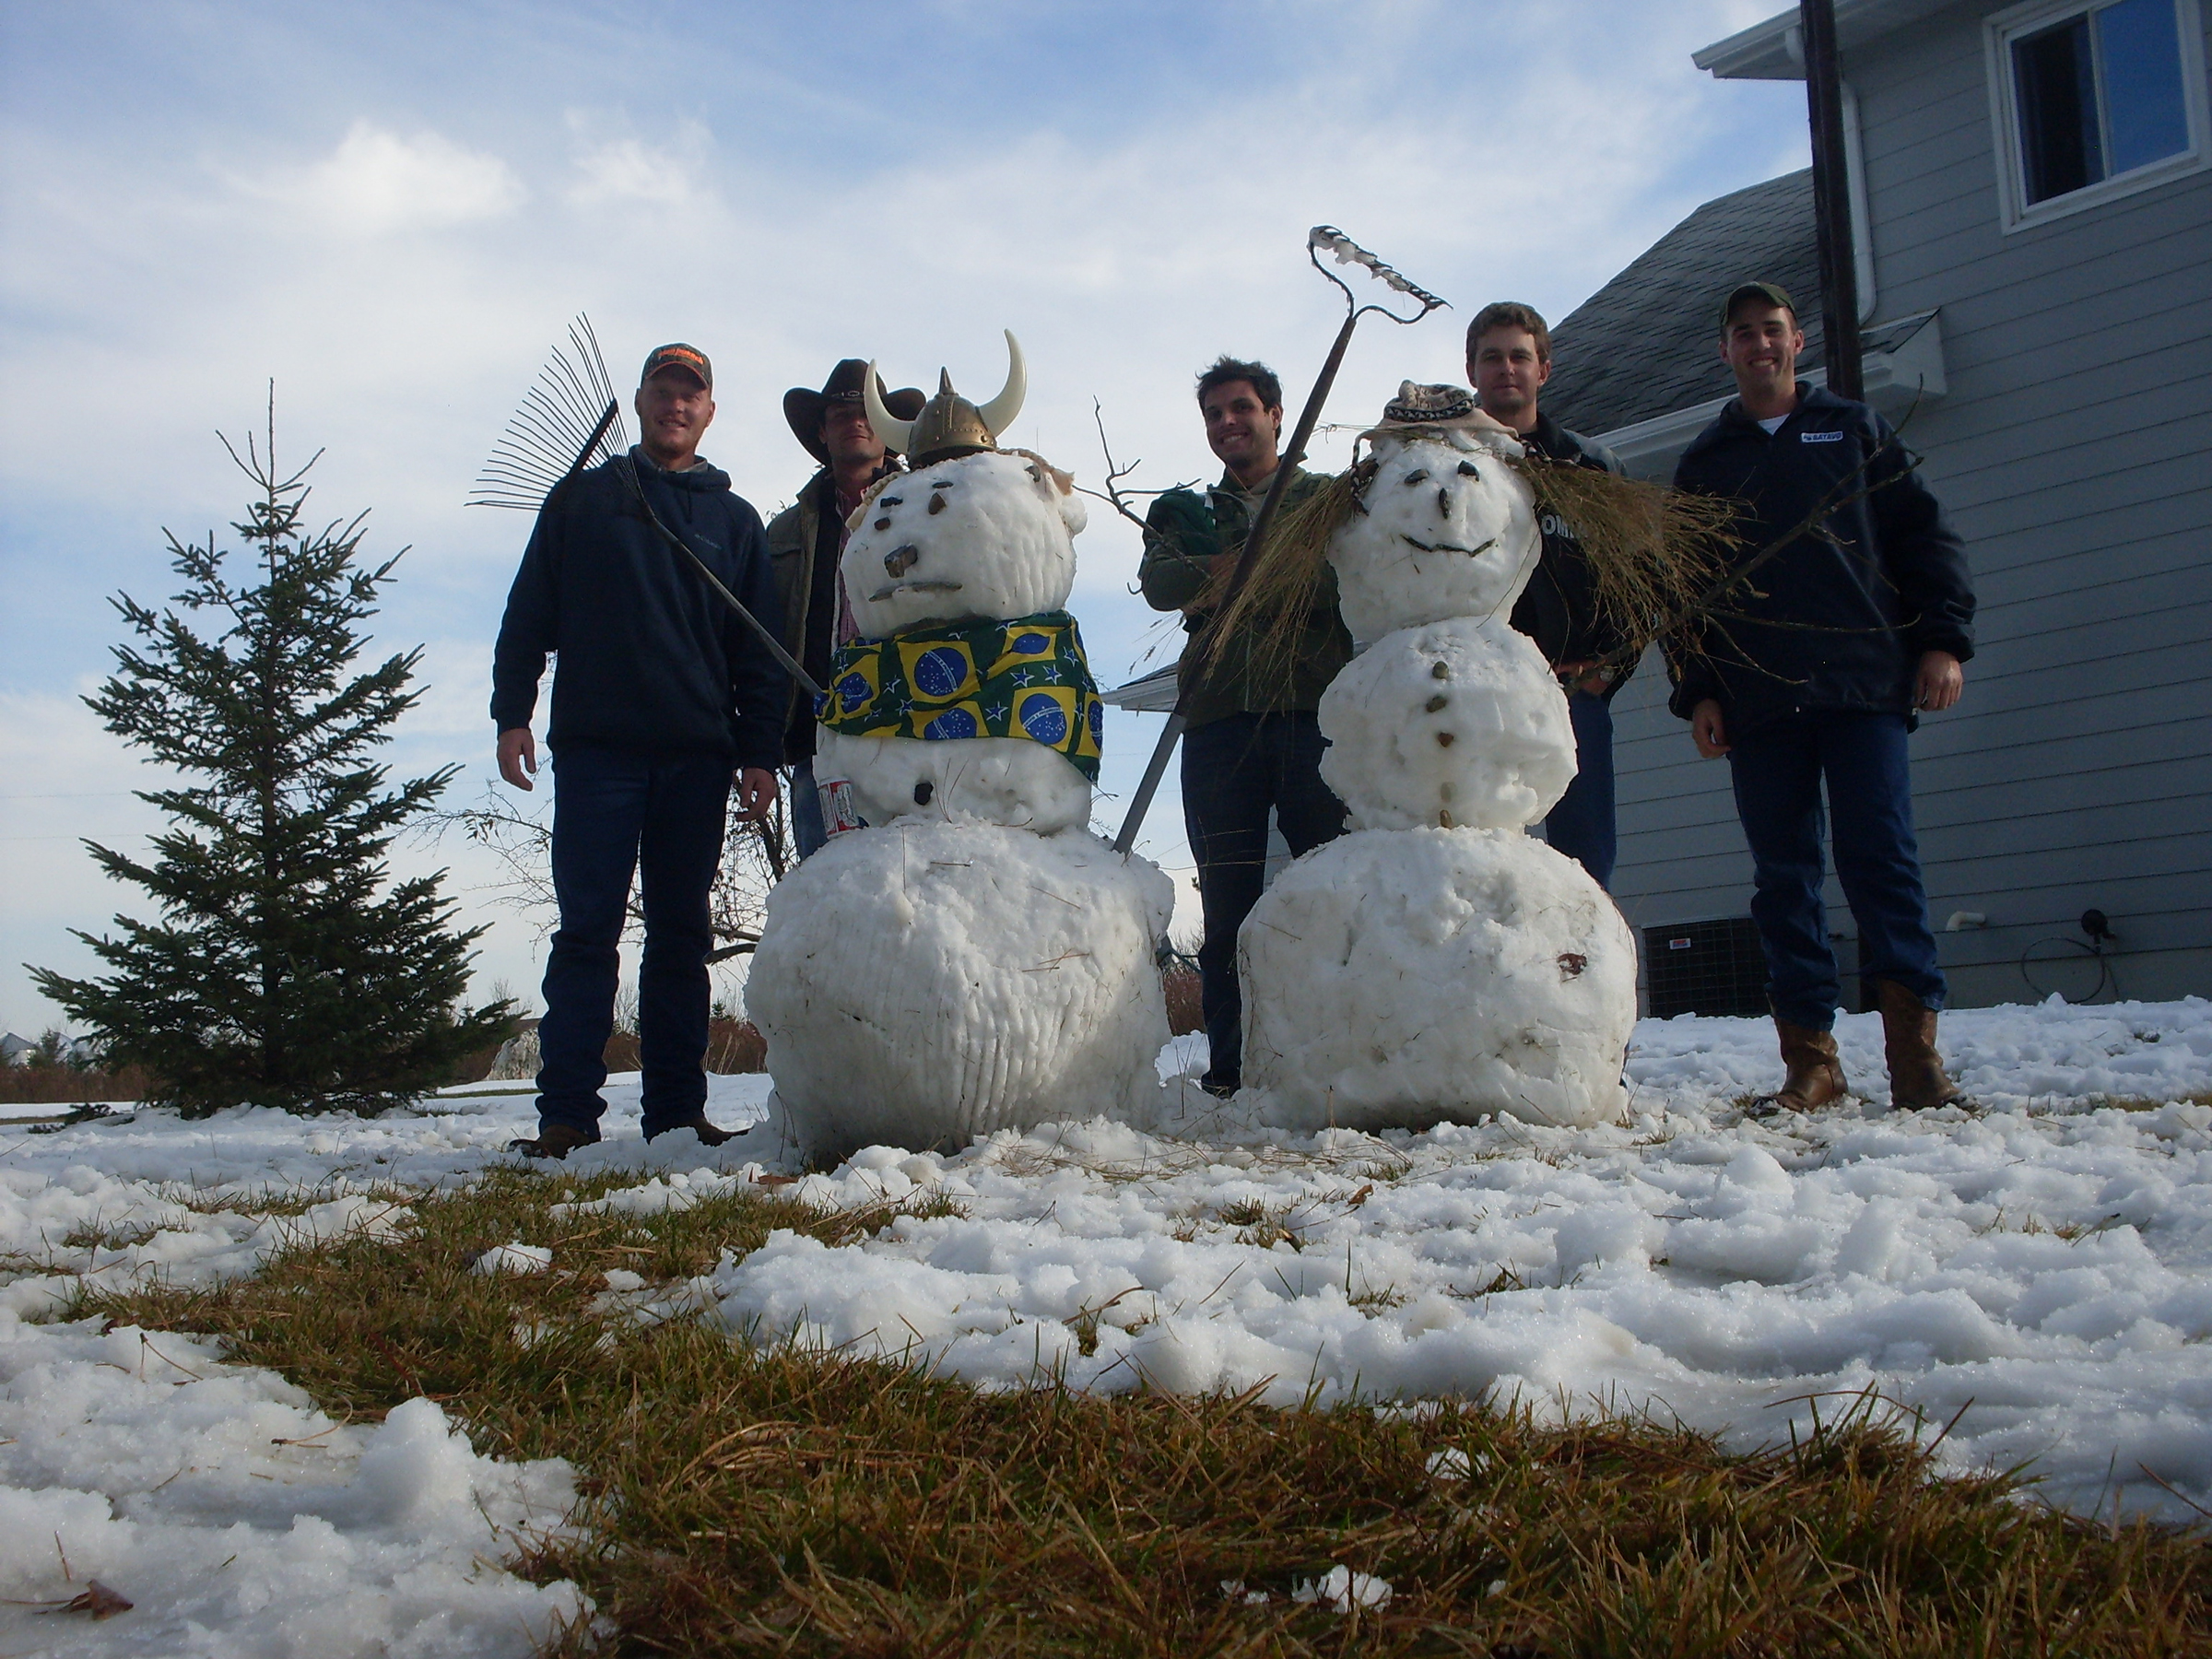 2010 interns made snowman